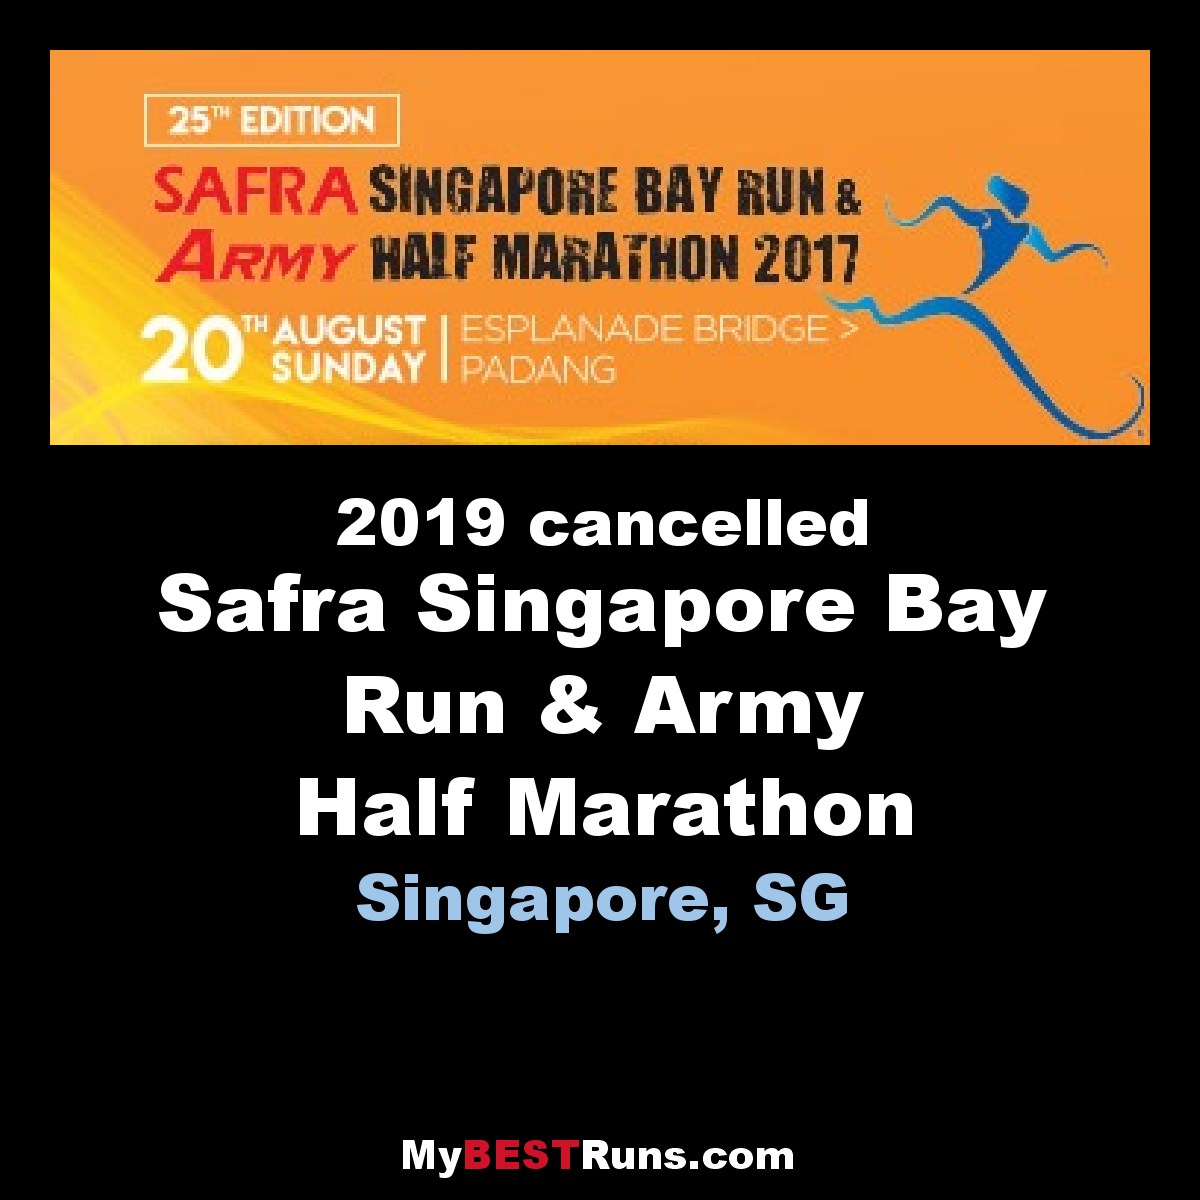 Safra Singapore Bay Run & Army Half